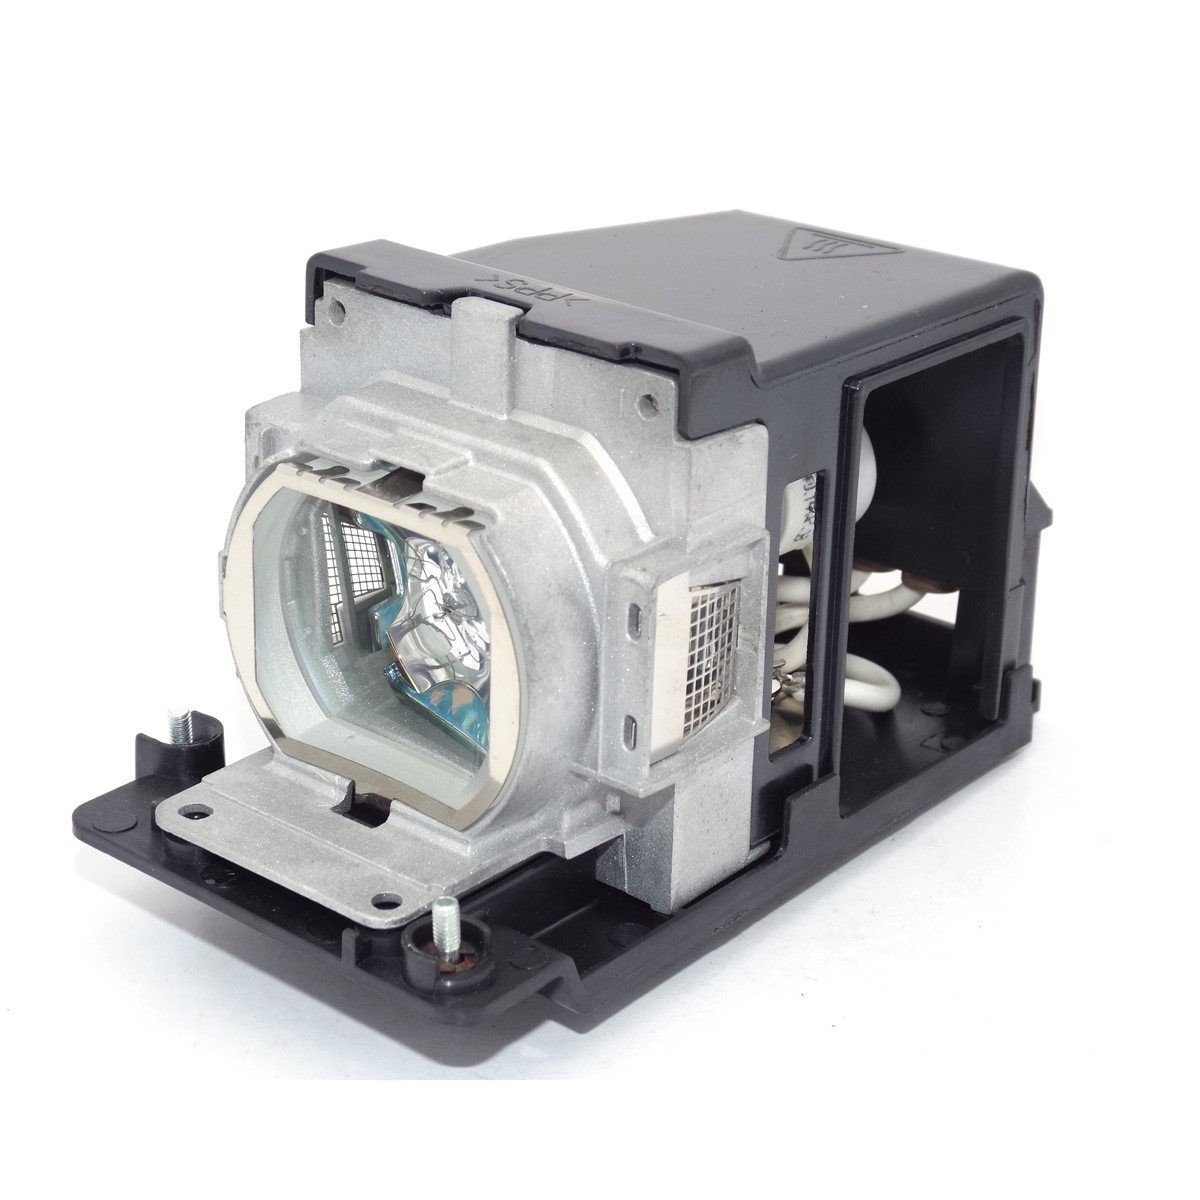 Projector Lamp Bulb TLPLW11 TLP-LW11 for TOSHIBA TLP-XC2500 TLP-X2500 TDP-XD3000 TLP-X2000EDU With housing 120 days warranty tlplp4 compatible projector lamp bulb tlp lp4 with housing for toshiba tdp p4 etc